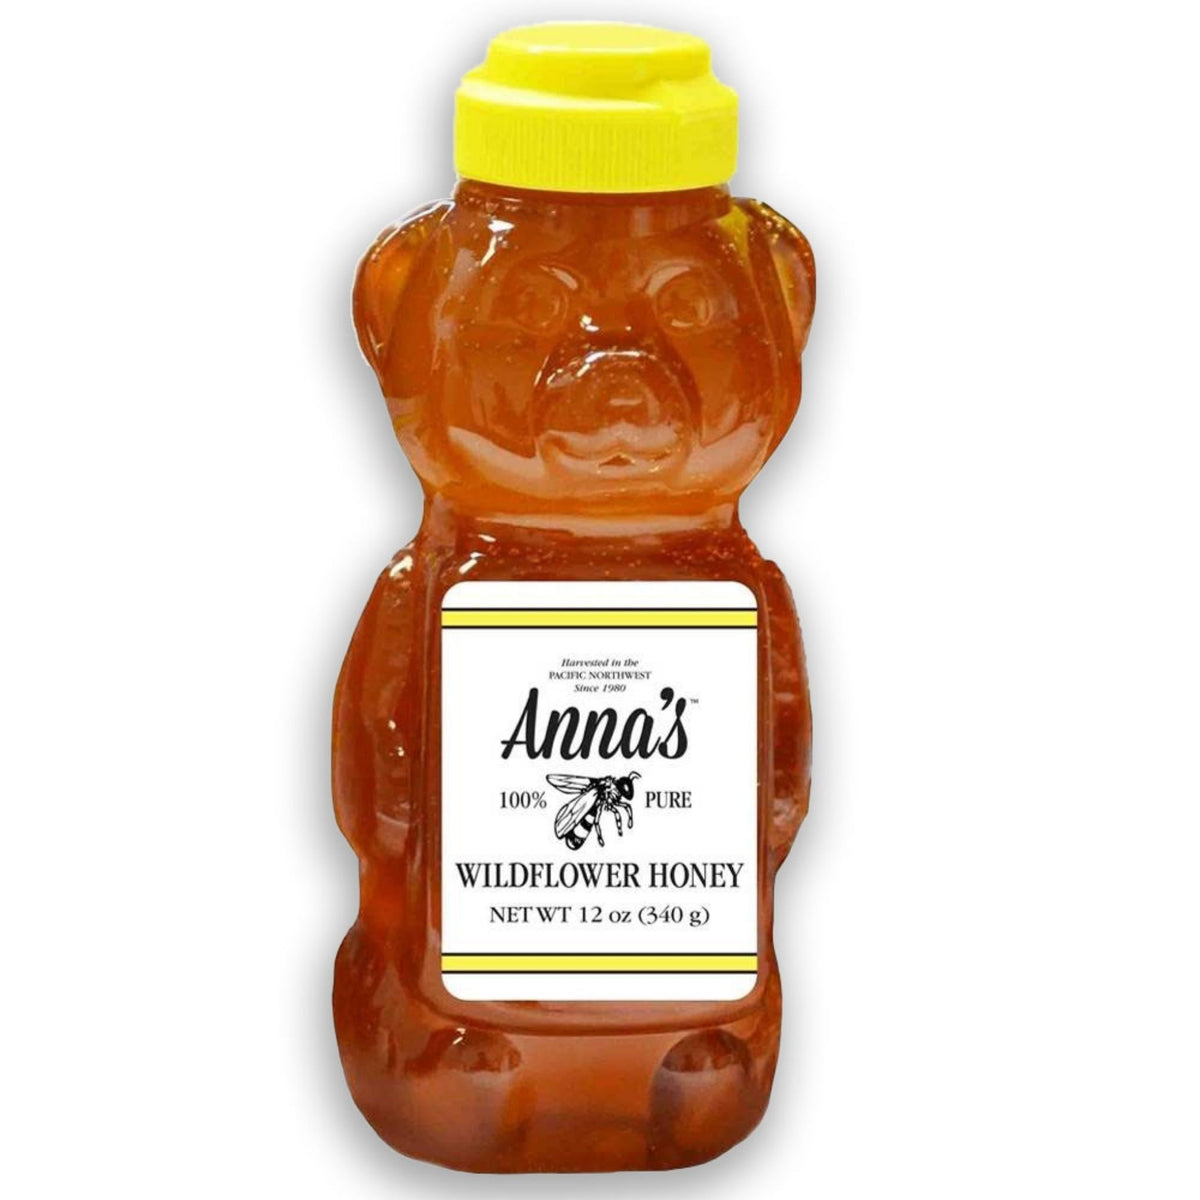 Anna's 100% Pure Wildflower Honey Harvested in The Pacific Northwest and Put Inside a 12-Ounce Bear Bottle